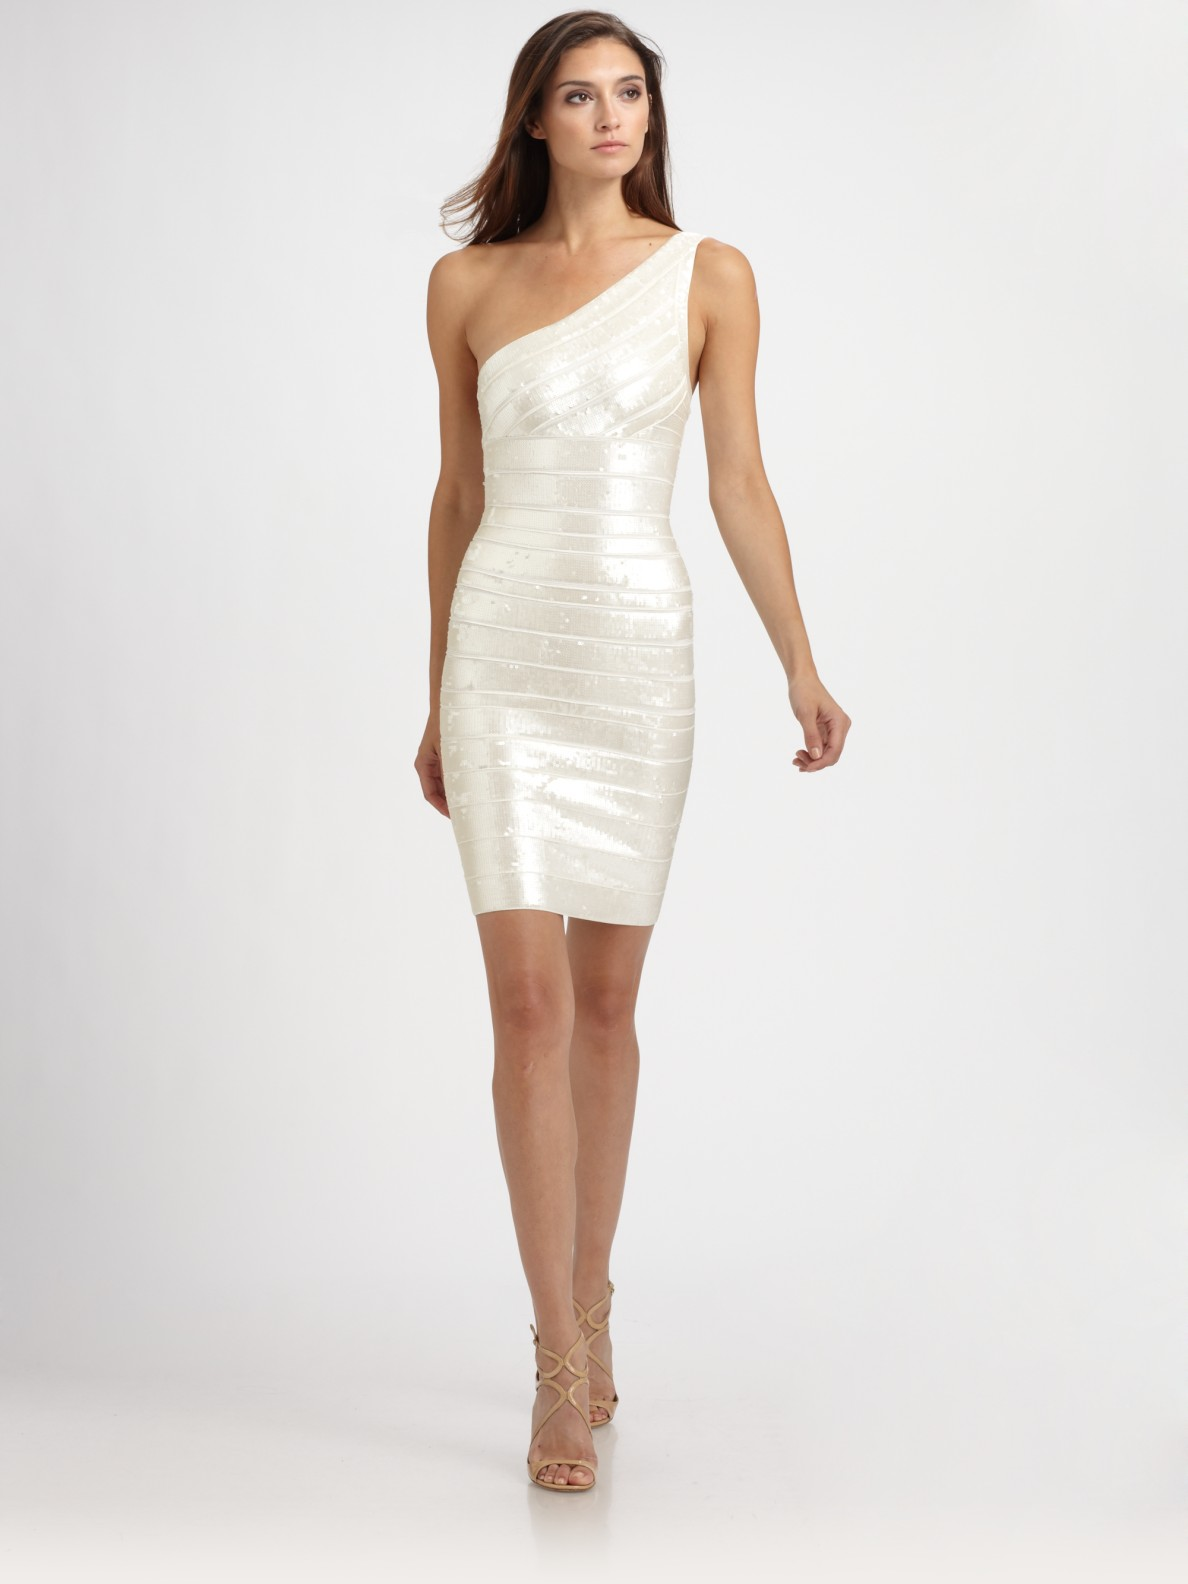 Gallery Previously Sold At Saks Fifth Avenue Women S White Tail Dresses Herve Leger